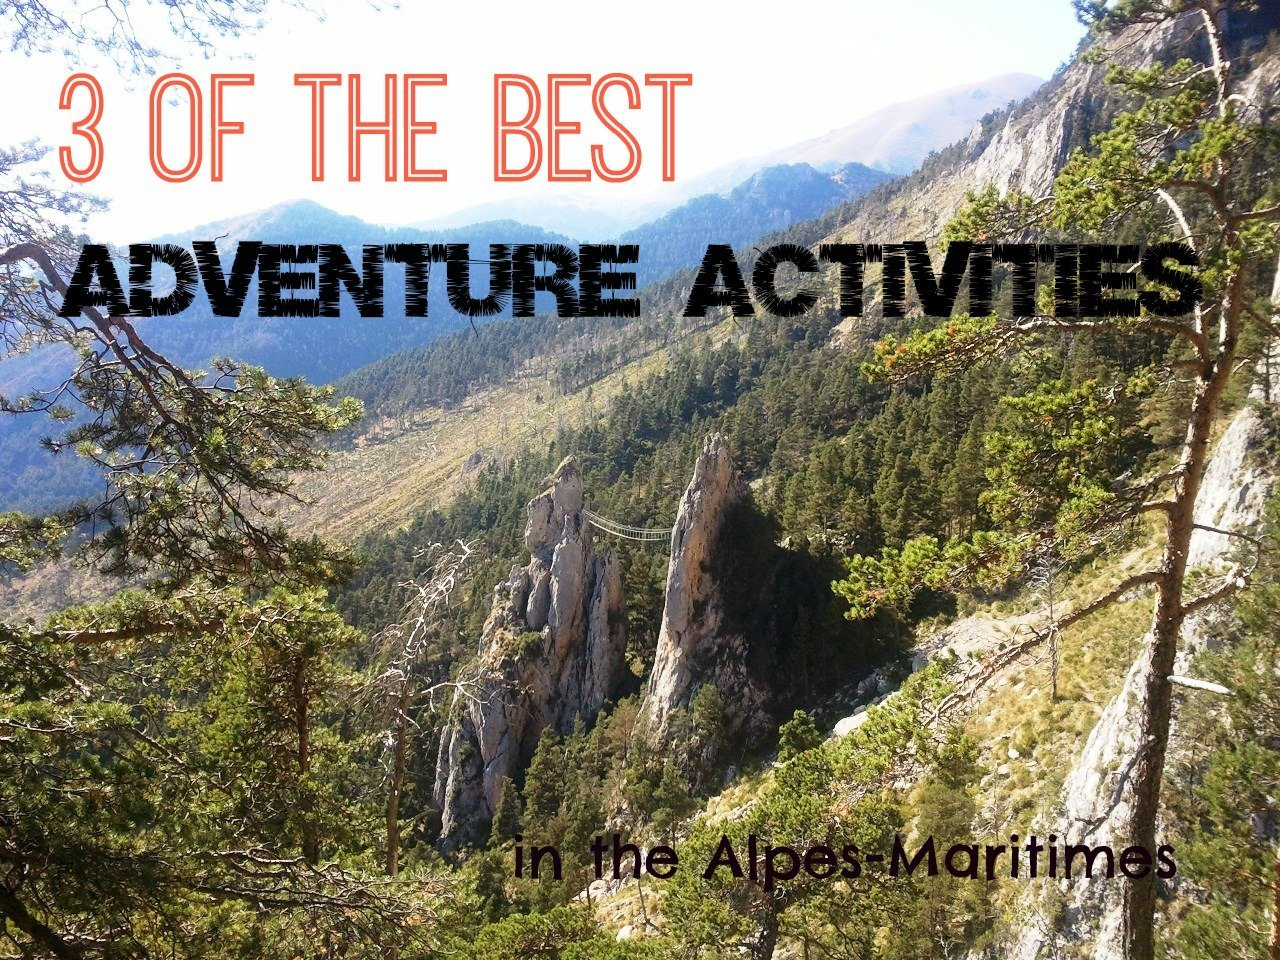 3 of the best adventure activities – Canyoning, Climbing and Via Ferrata